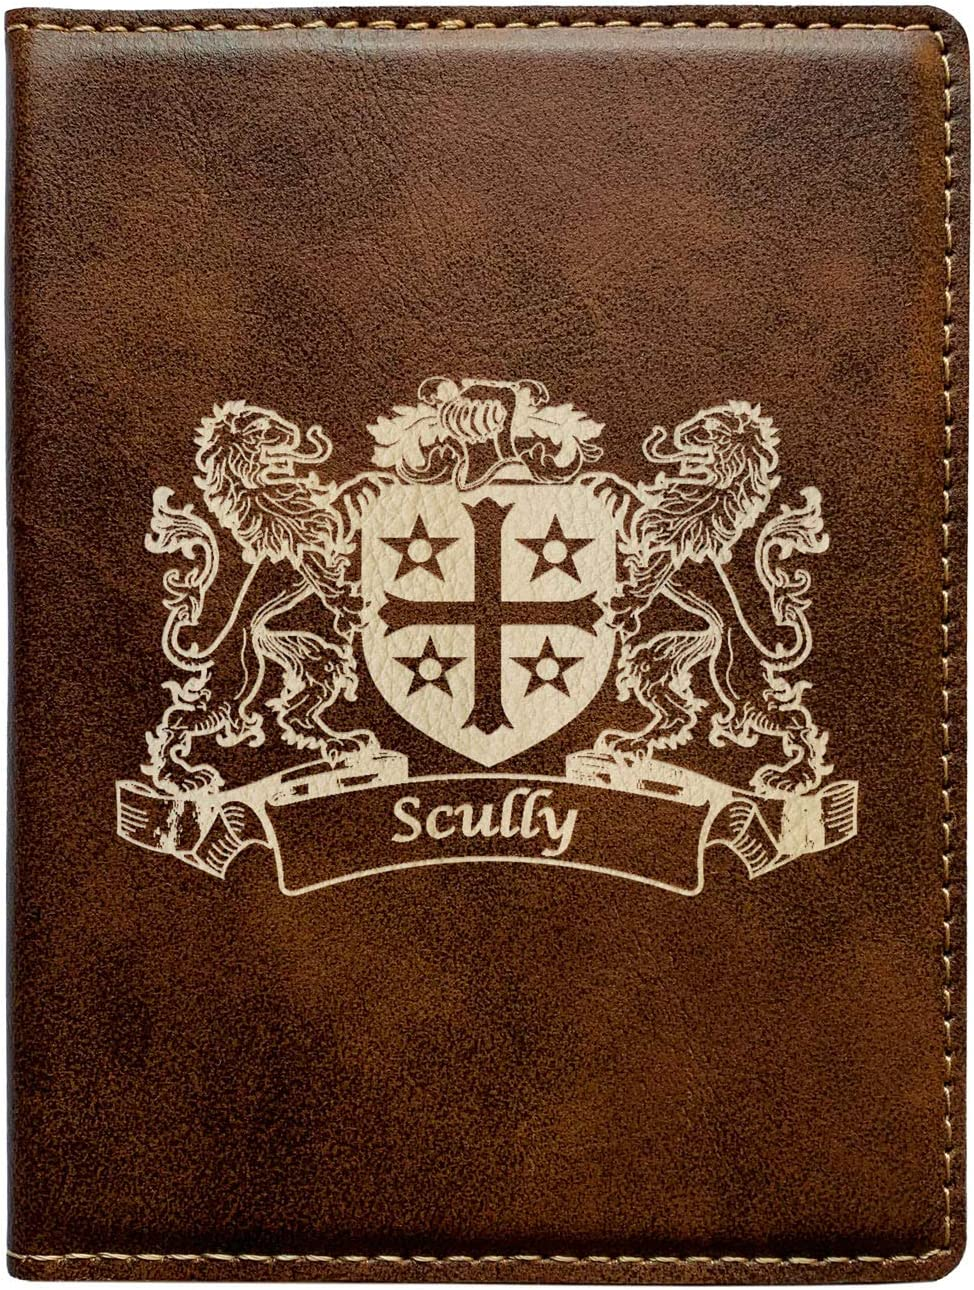 Scully Irish Coat of Arms Leather Passport Wallet